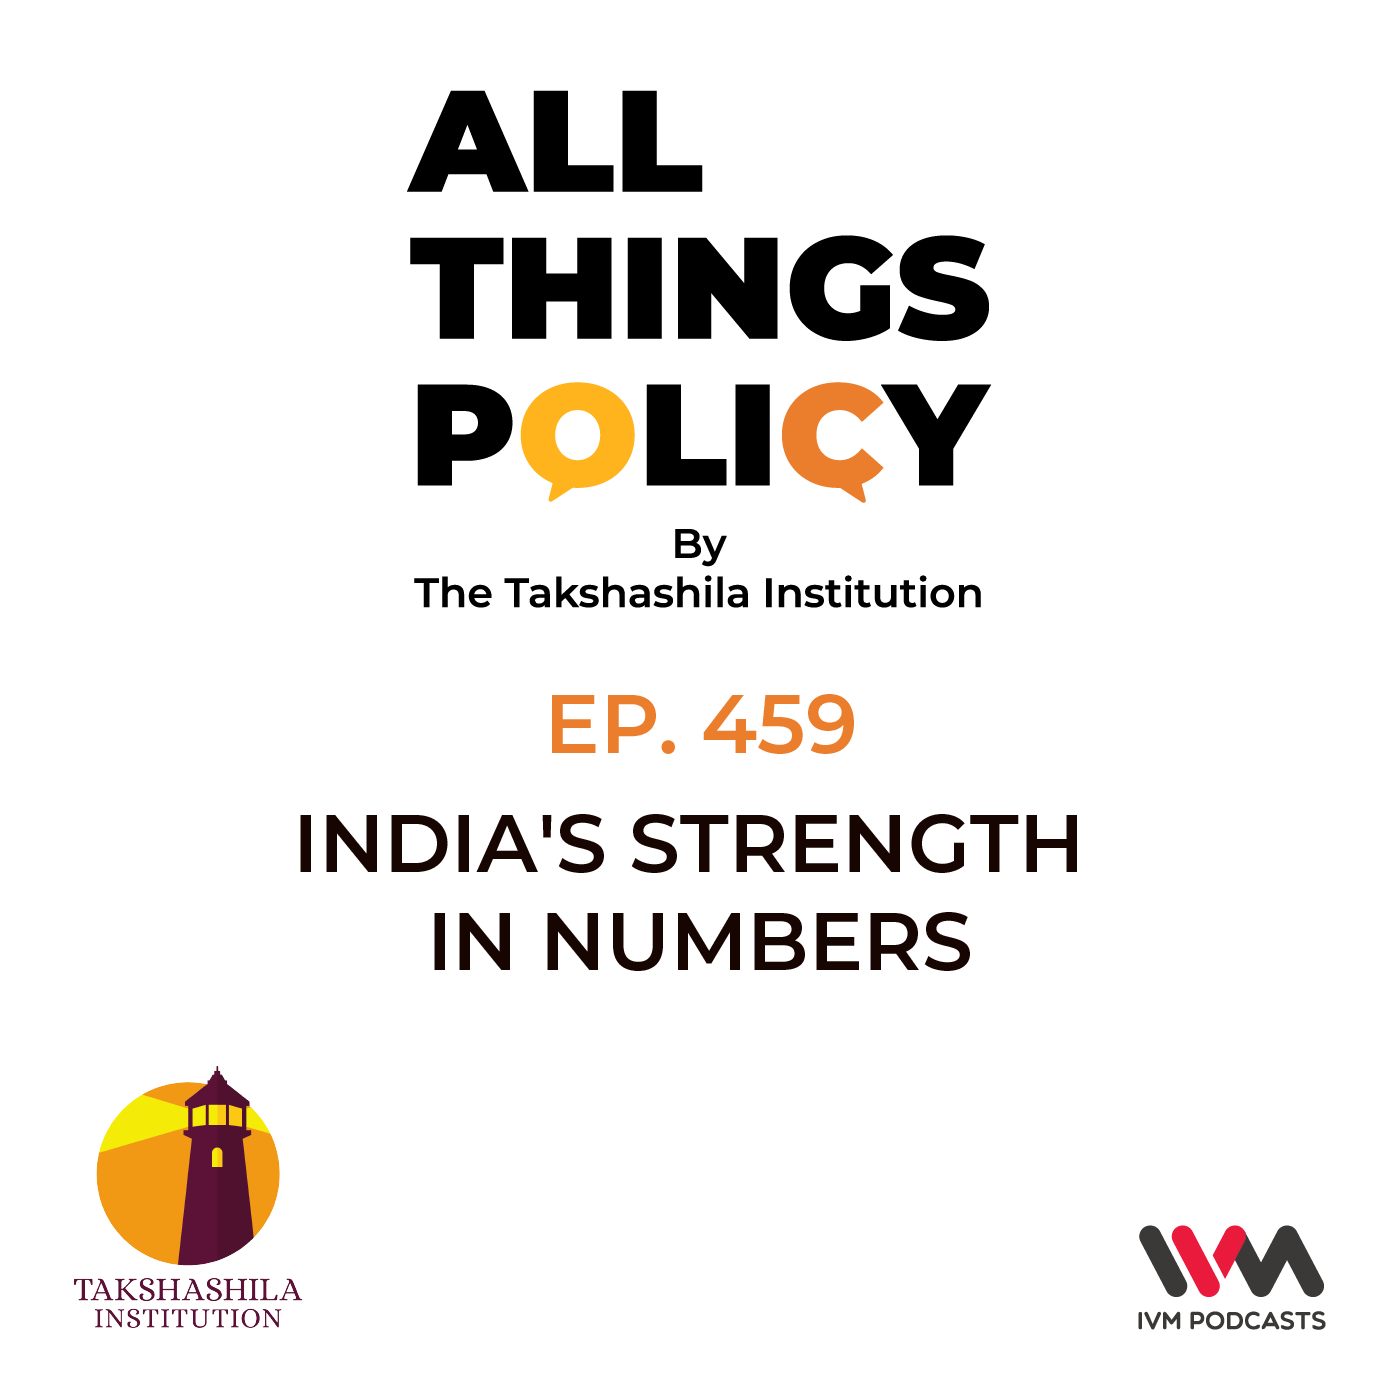 Ep. 459: India's Marathon: Shruti Rajagopalan on India's Strength in Numbers